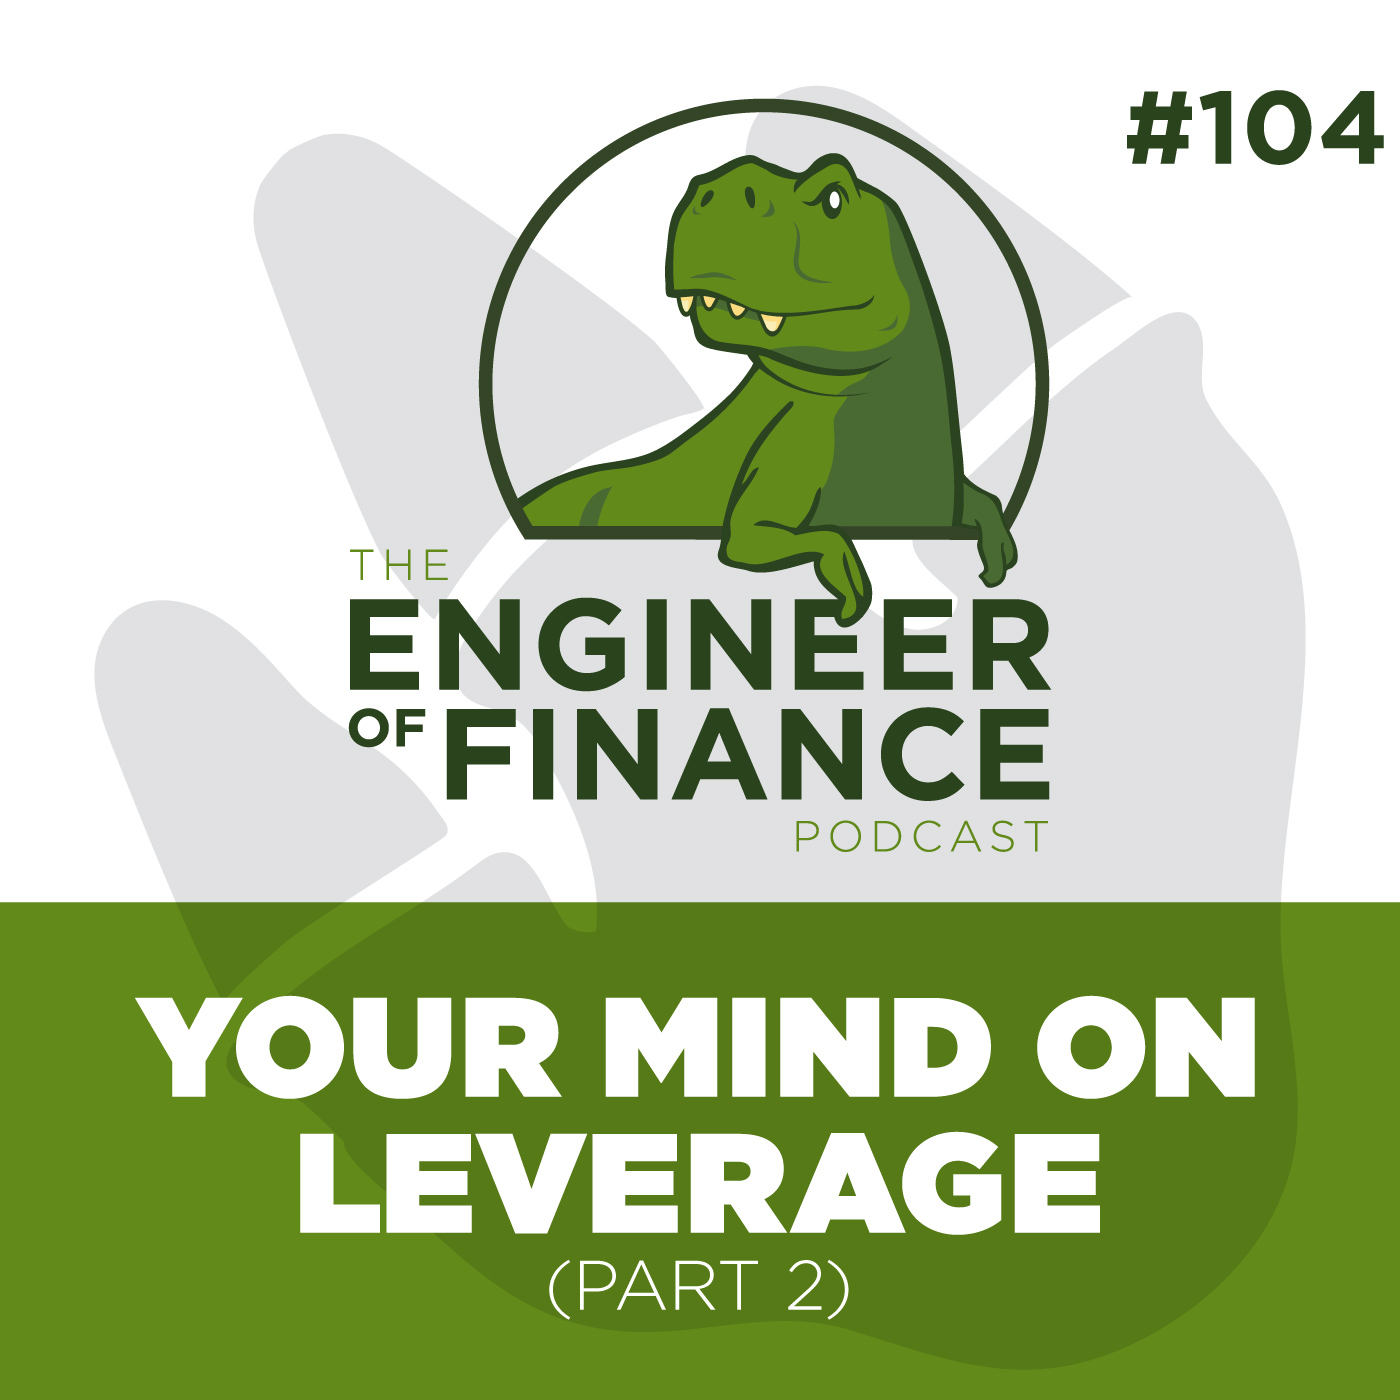 Your Mind on Leverage (Part 2) – Episode 104